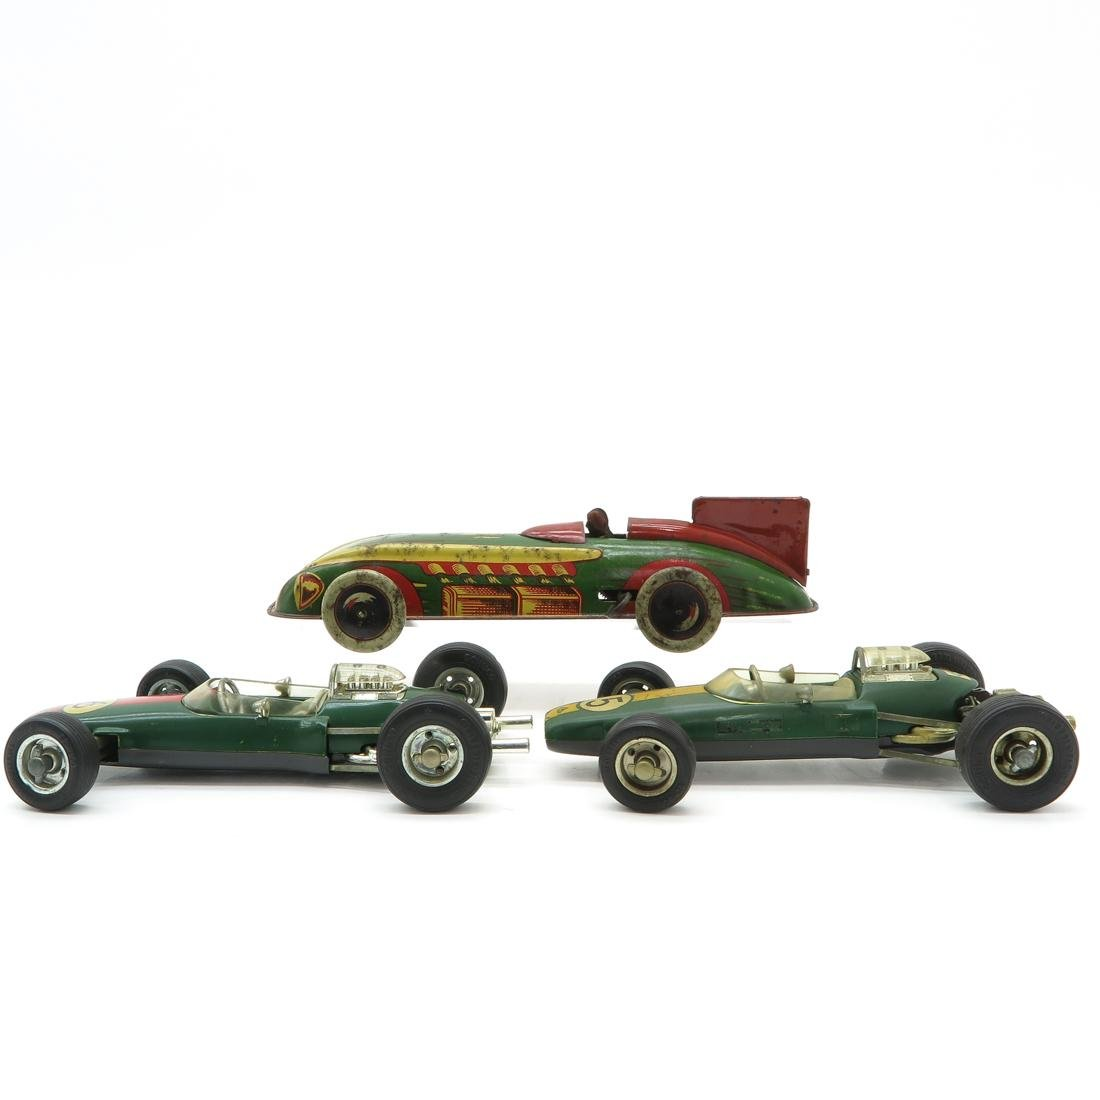 Lot of 3 Vintage Toy Racing Cars